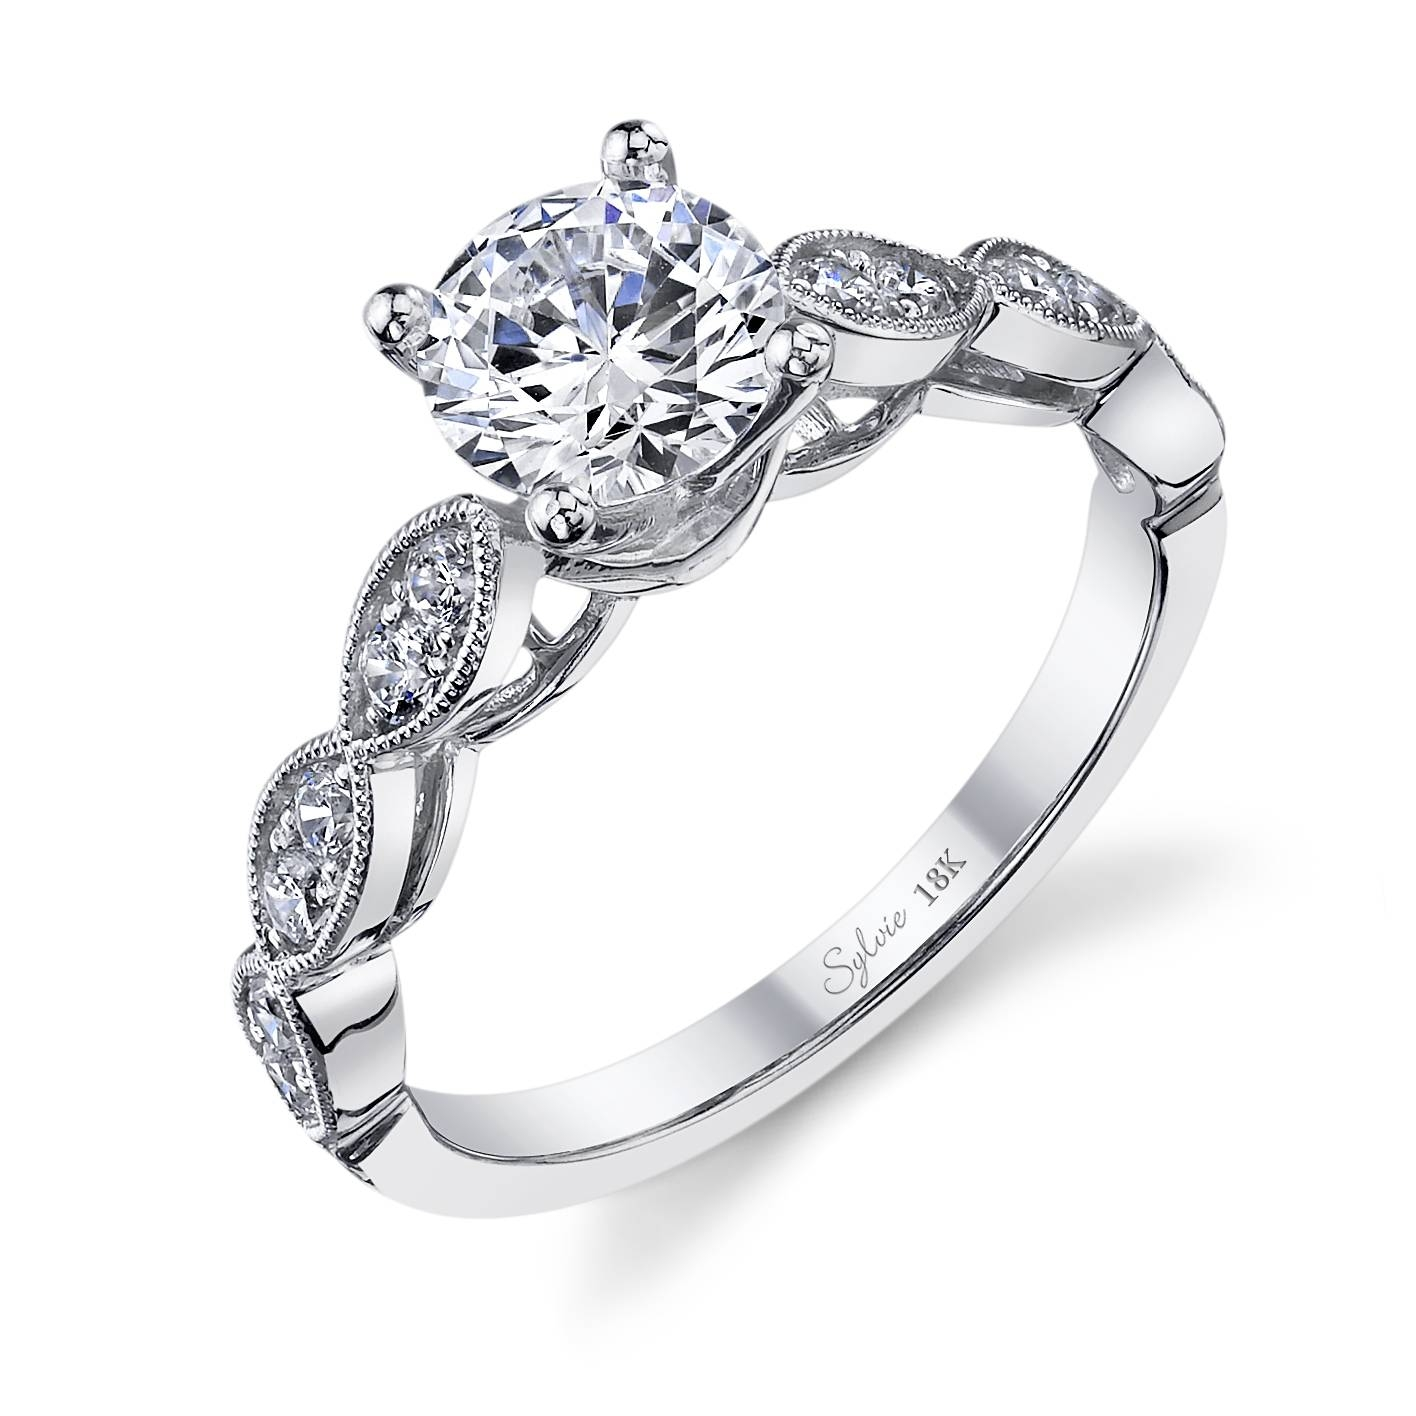 Unique Round Diamond Engagement Ring: Sylvie Collectionalexis With Tampa Engagement Rings (Gallery 1 of 15)